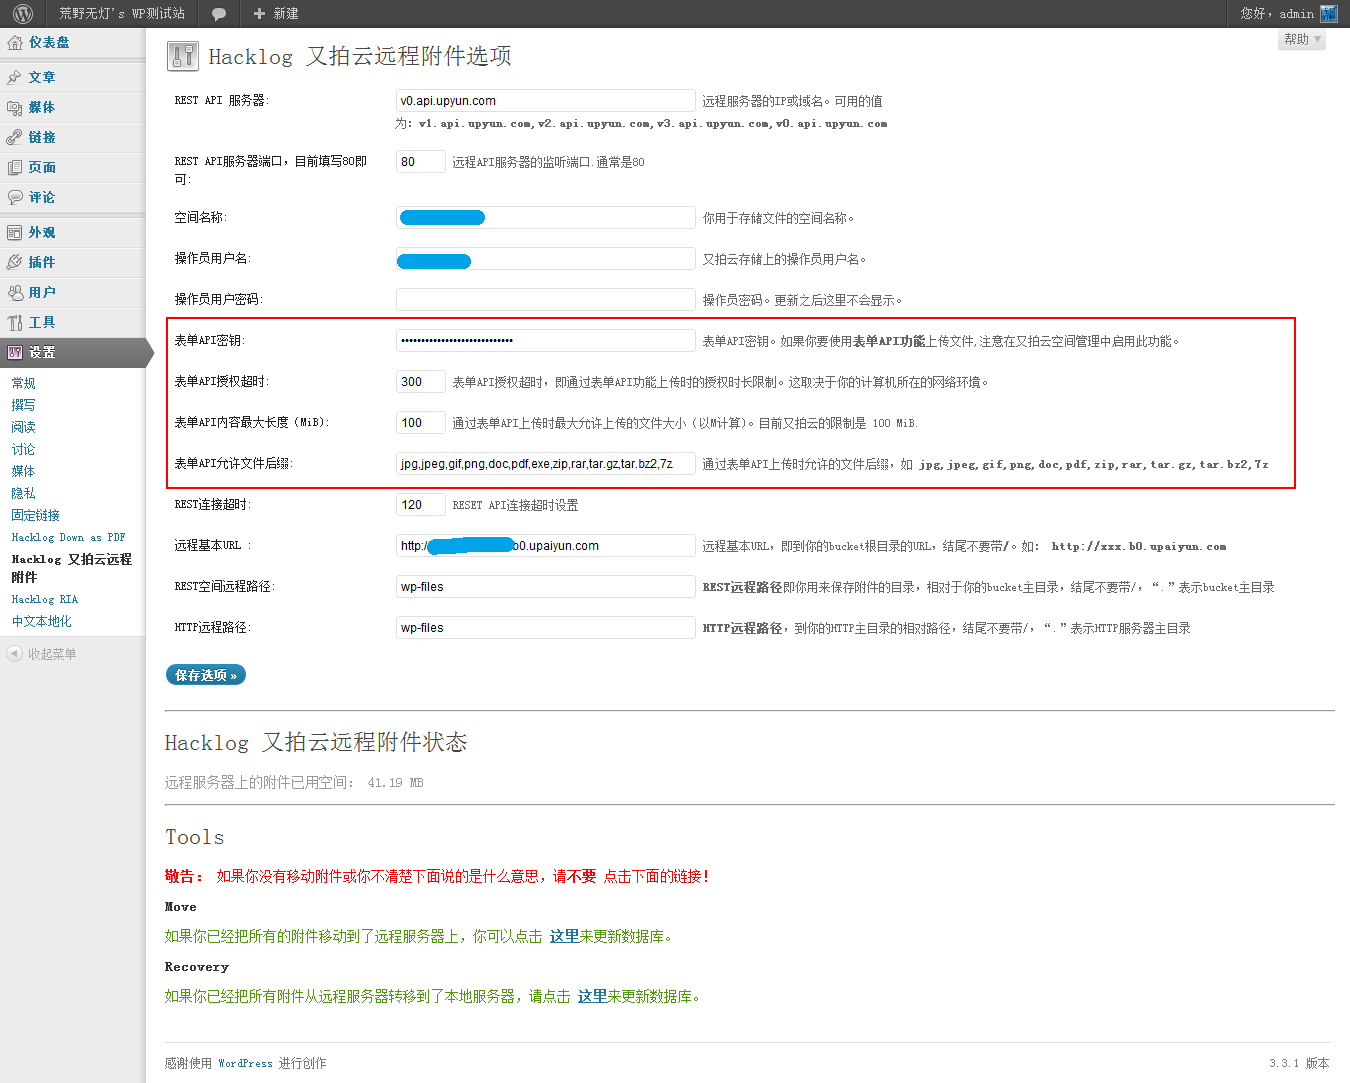 Hacklog Remote Attachment Upyun – 又拍云 WordPress 远程附件上传插件